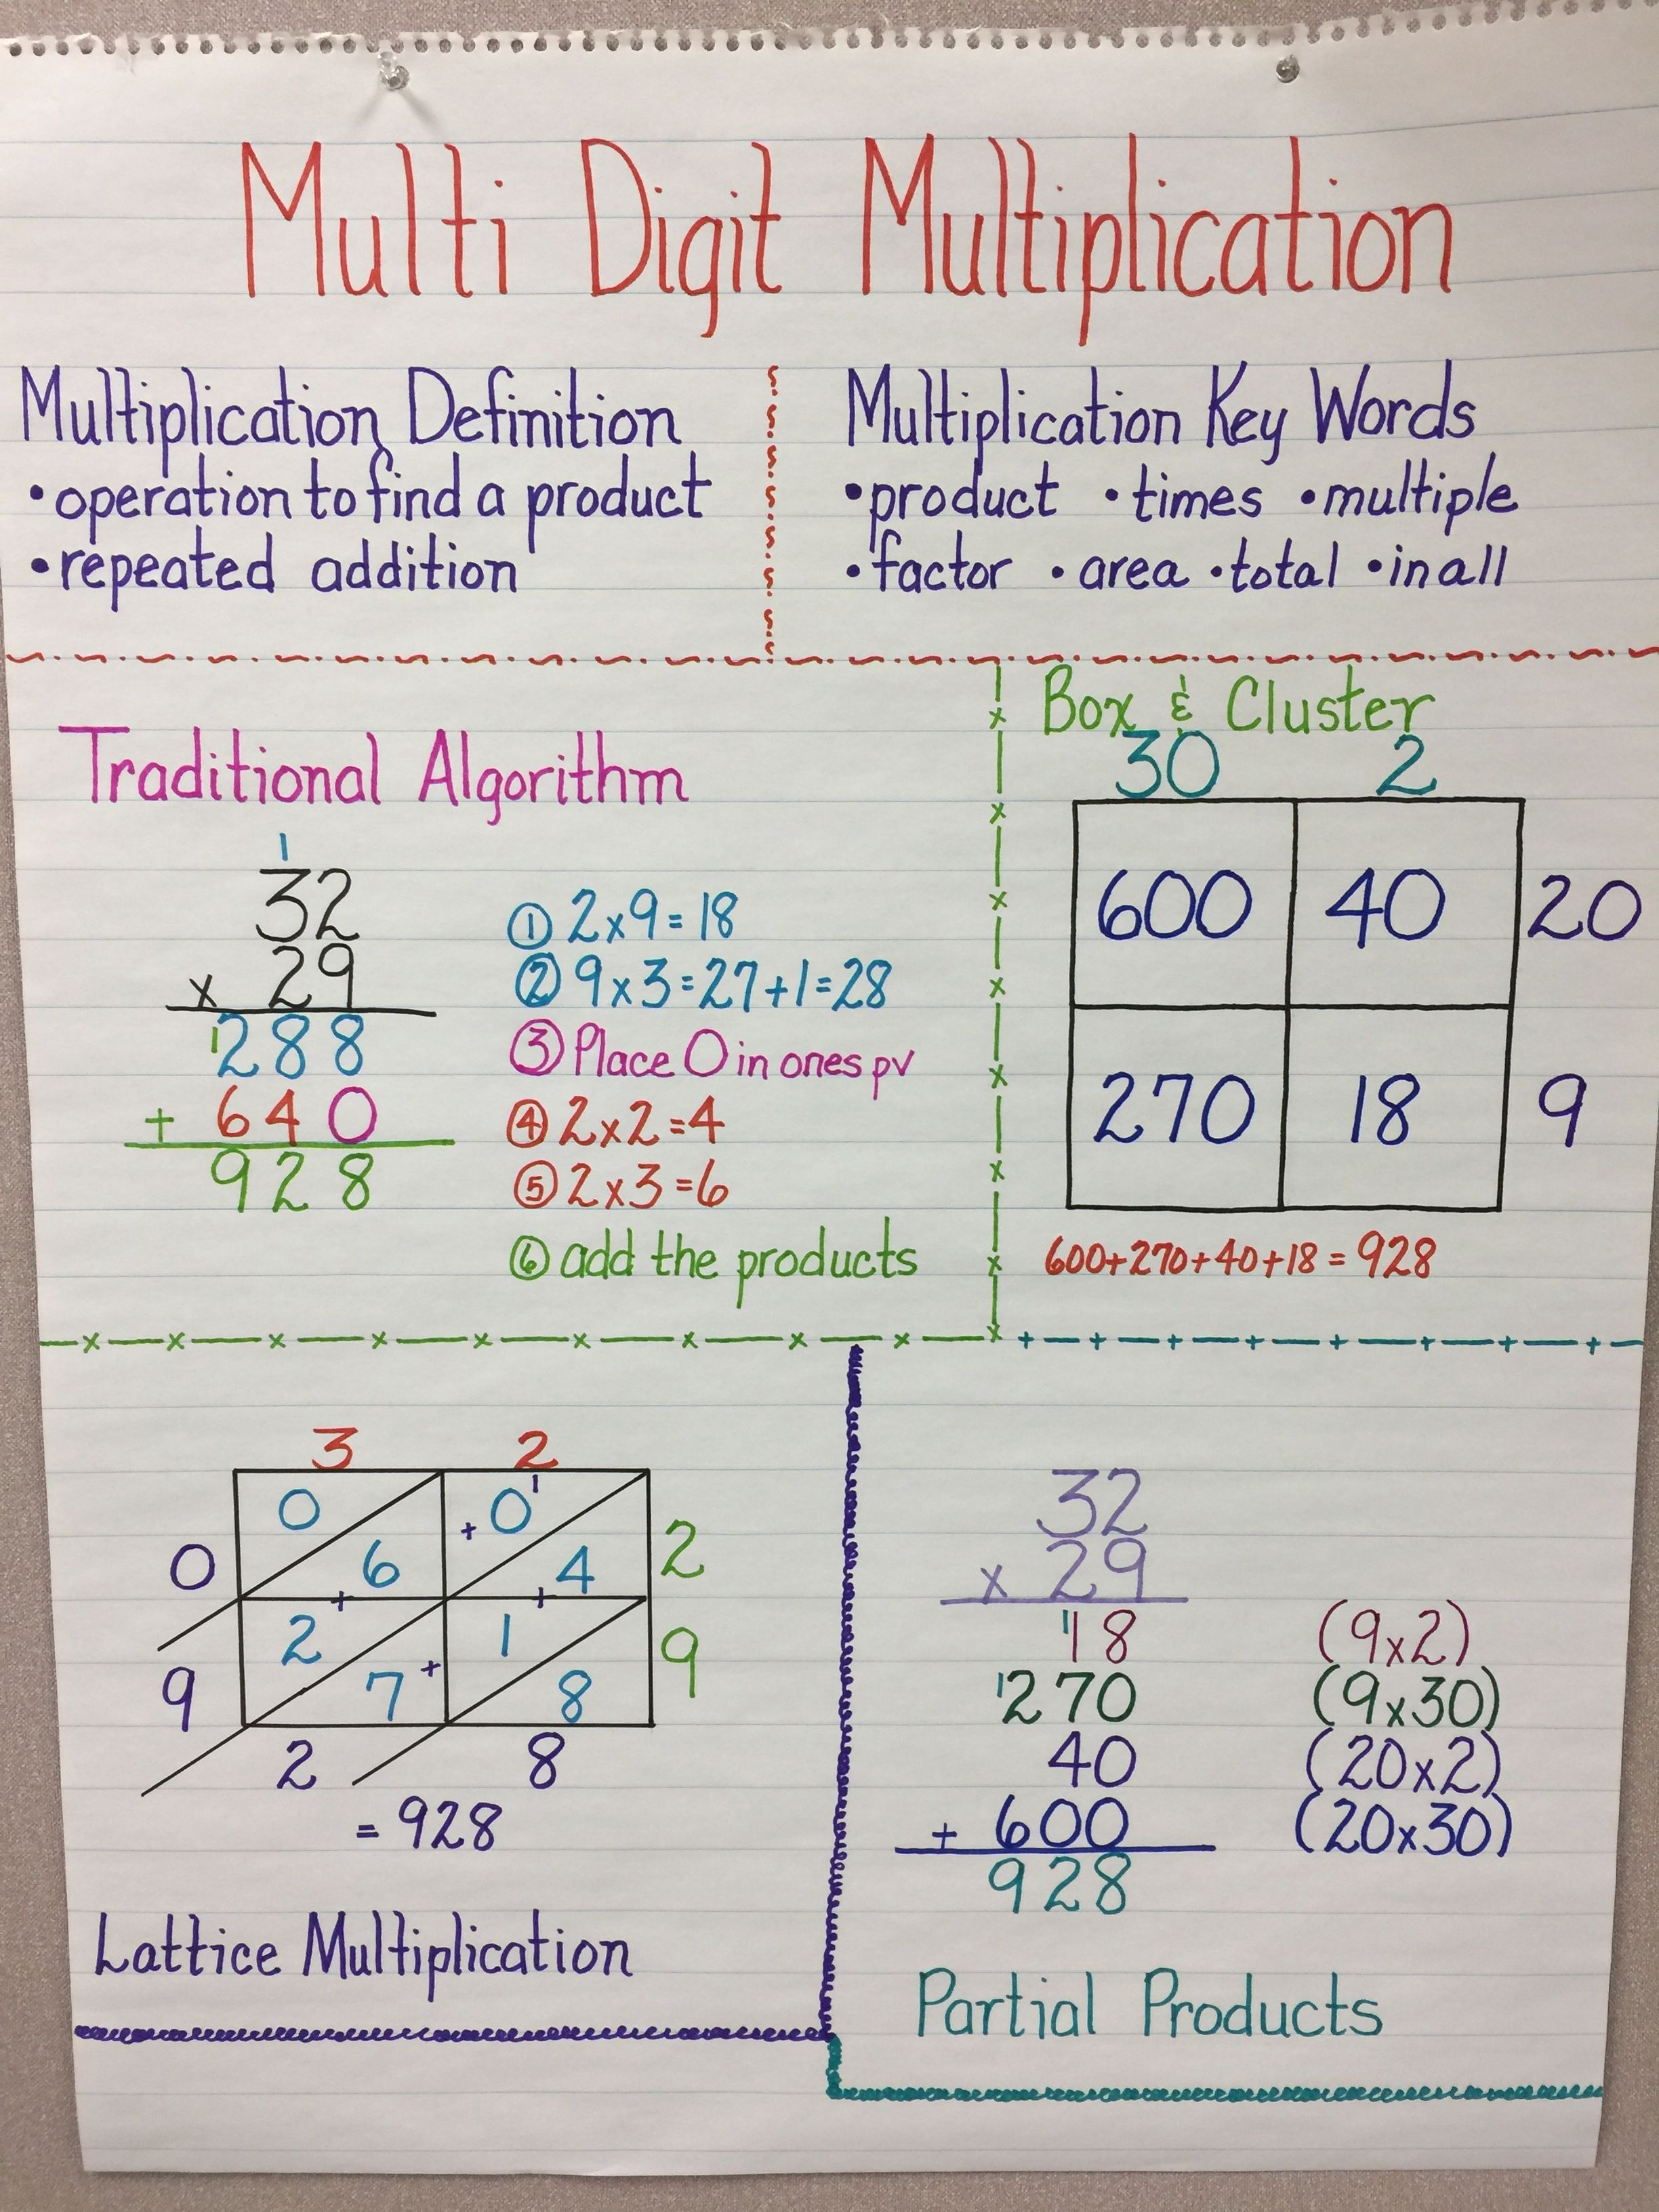 Differentiation Of Multiplication Strategies With Images